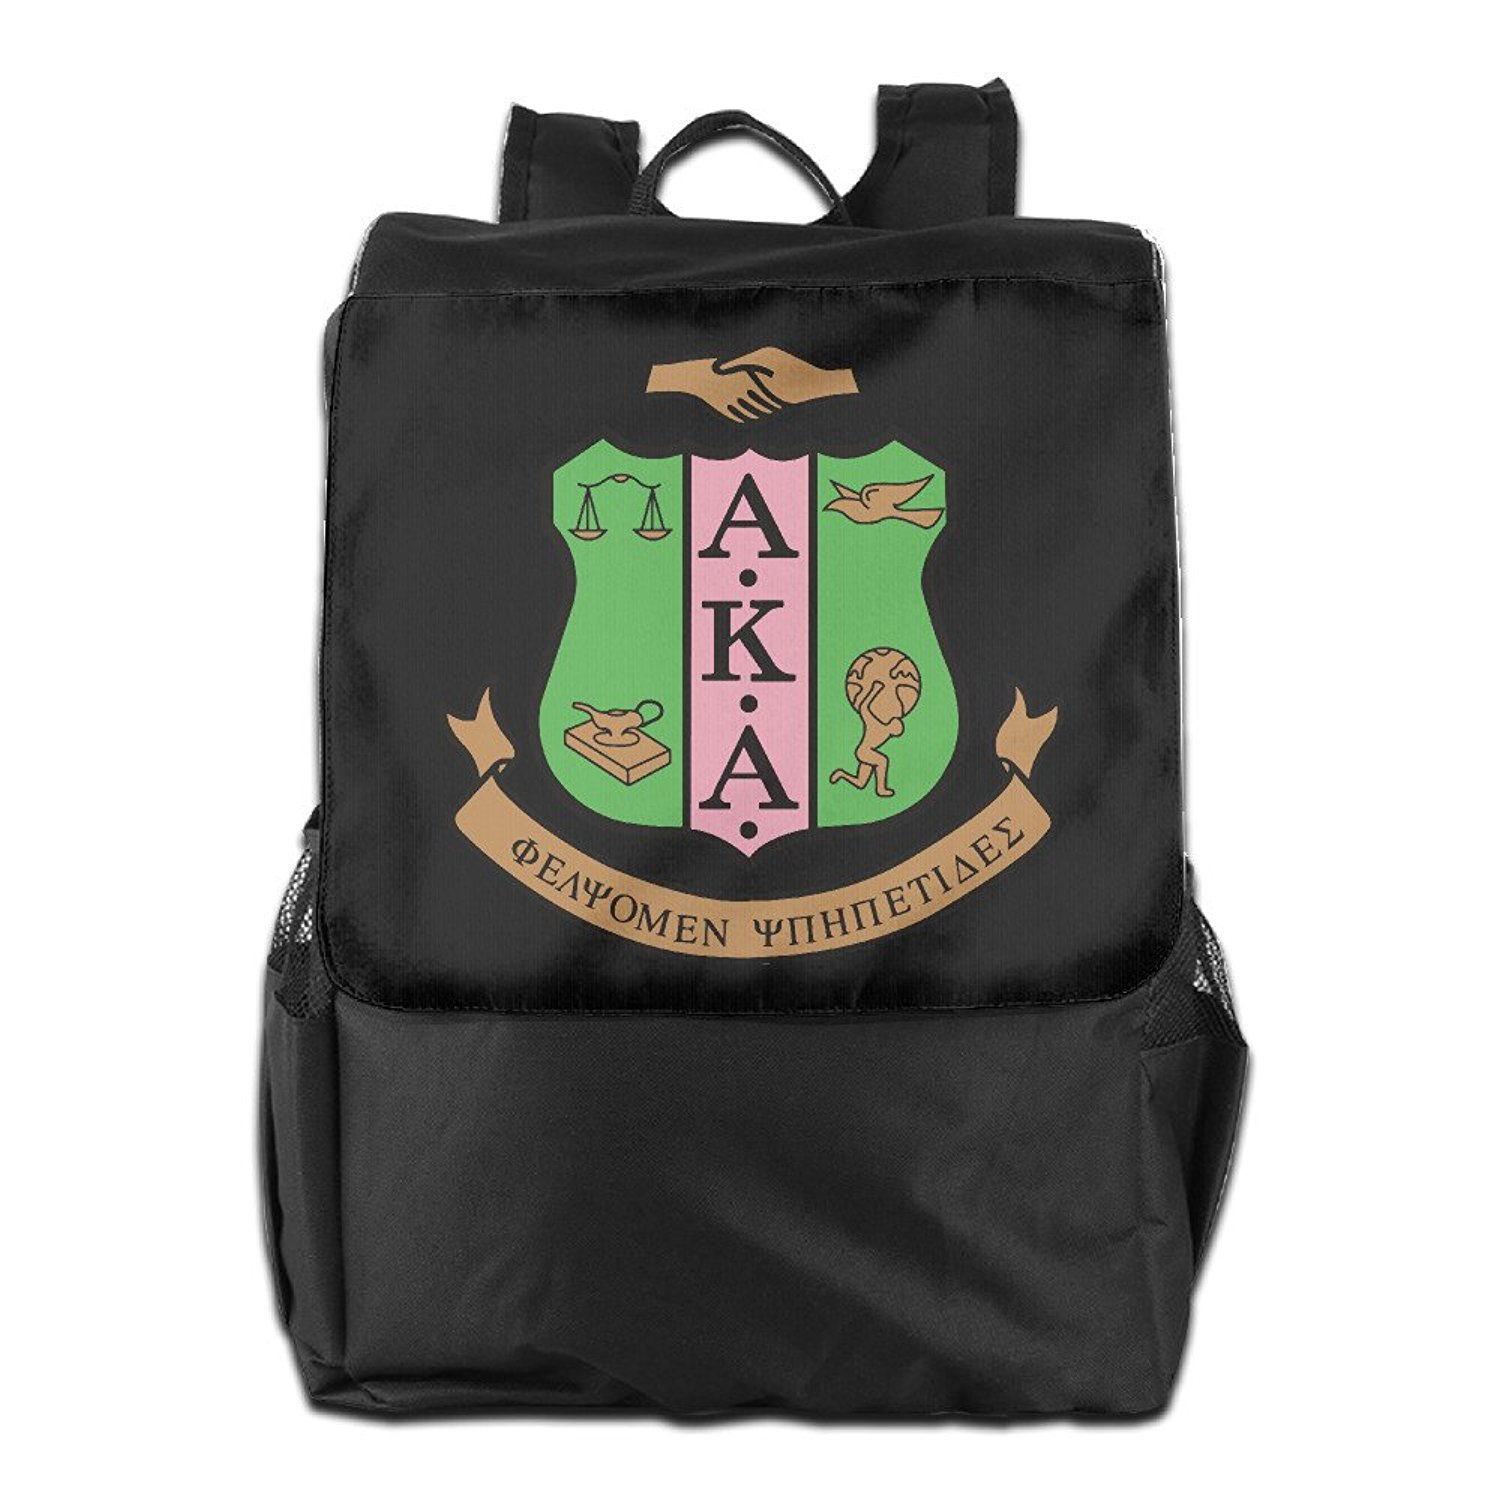 16481abee6b Get Quotations · Alpha Kappa Alpha Logo AKA Backpack Sport Bag Travel  Daypack For Men Women Girl Boy Rucksack